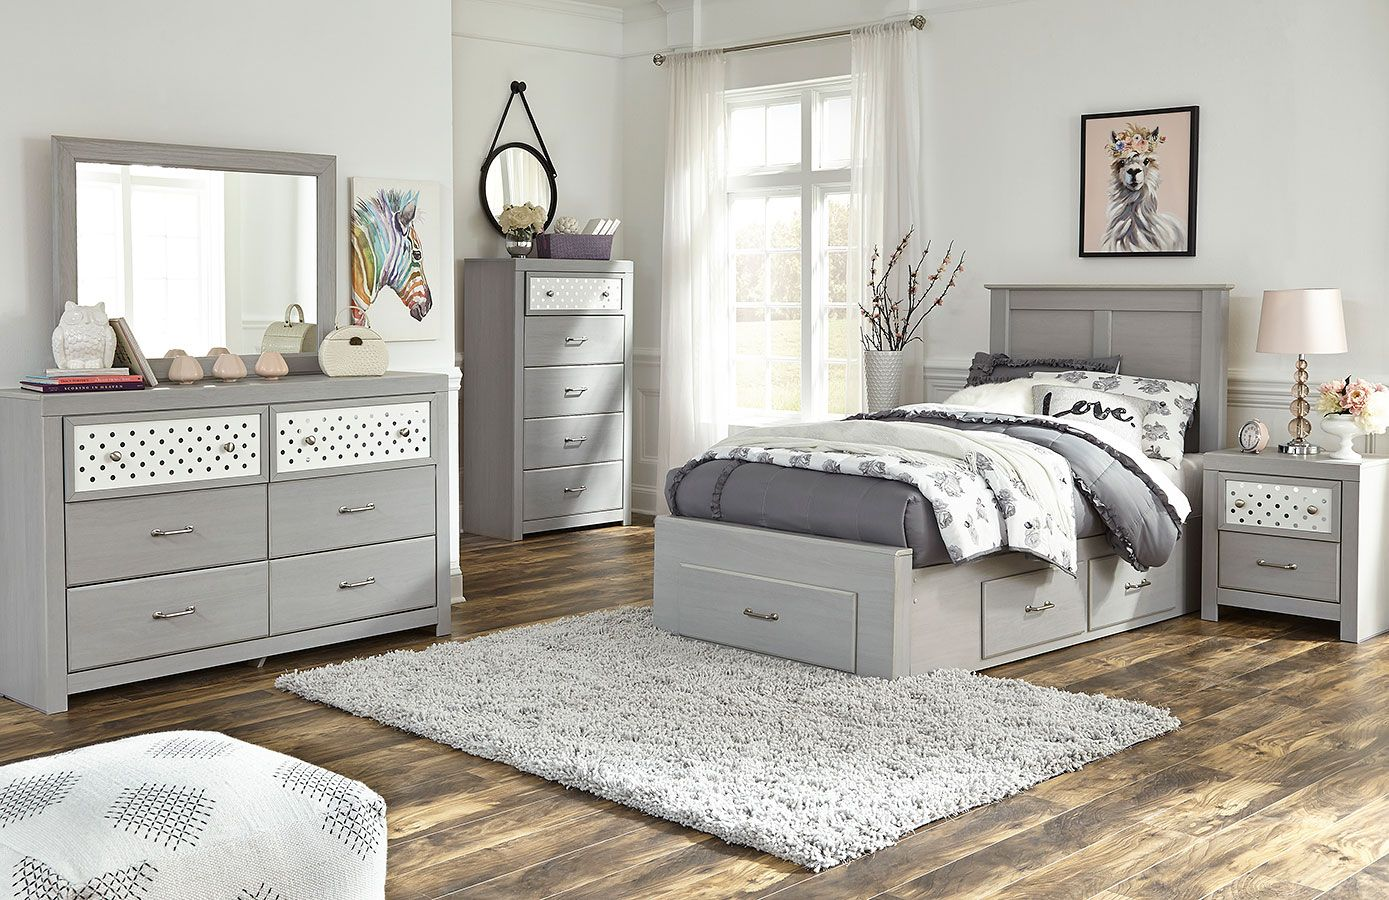 Arcella Youth Super Storage Bedroom Set in 2020 (With